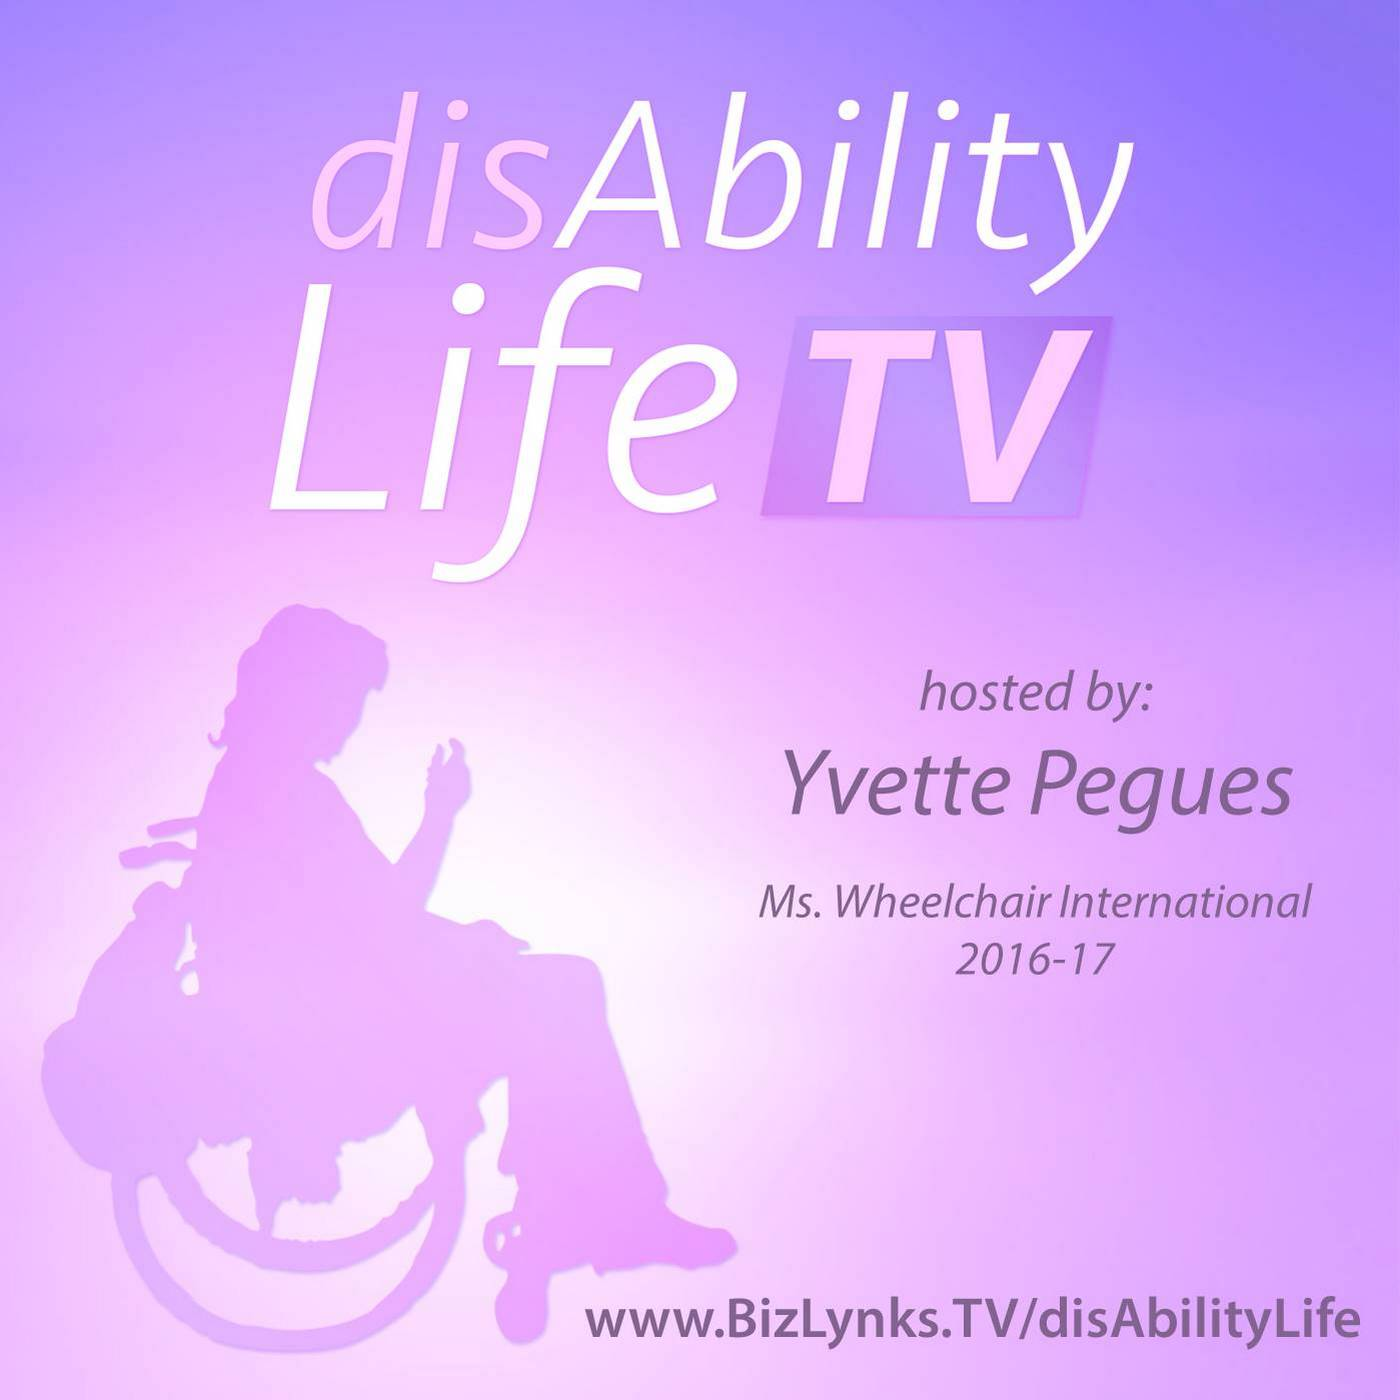 disAbilityLifeTV | BizLynks TV Network